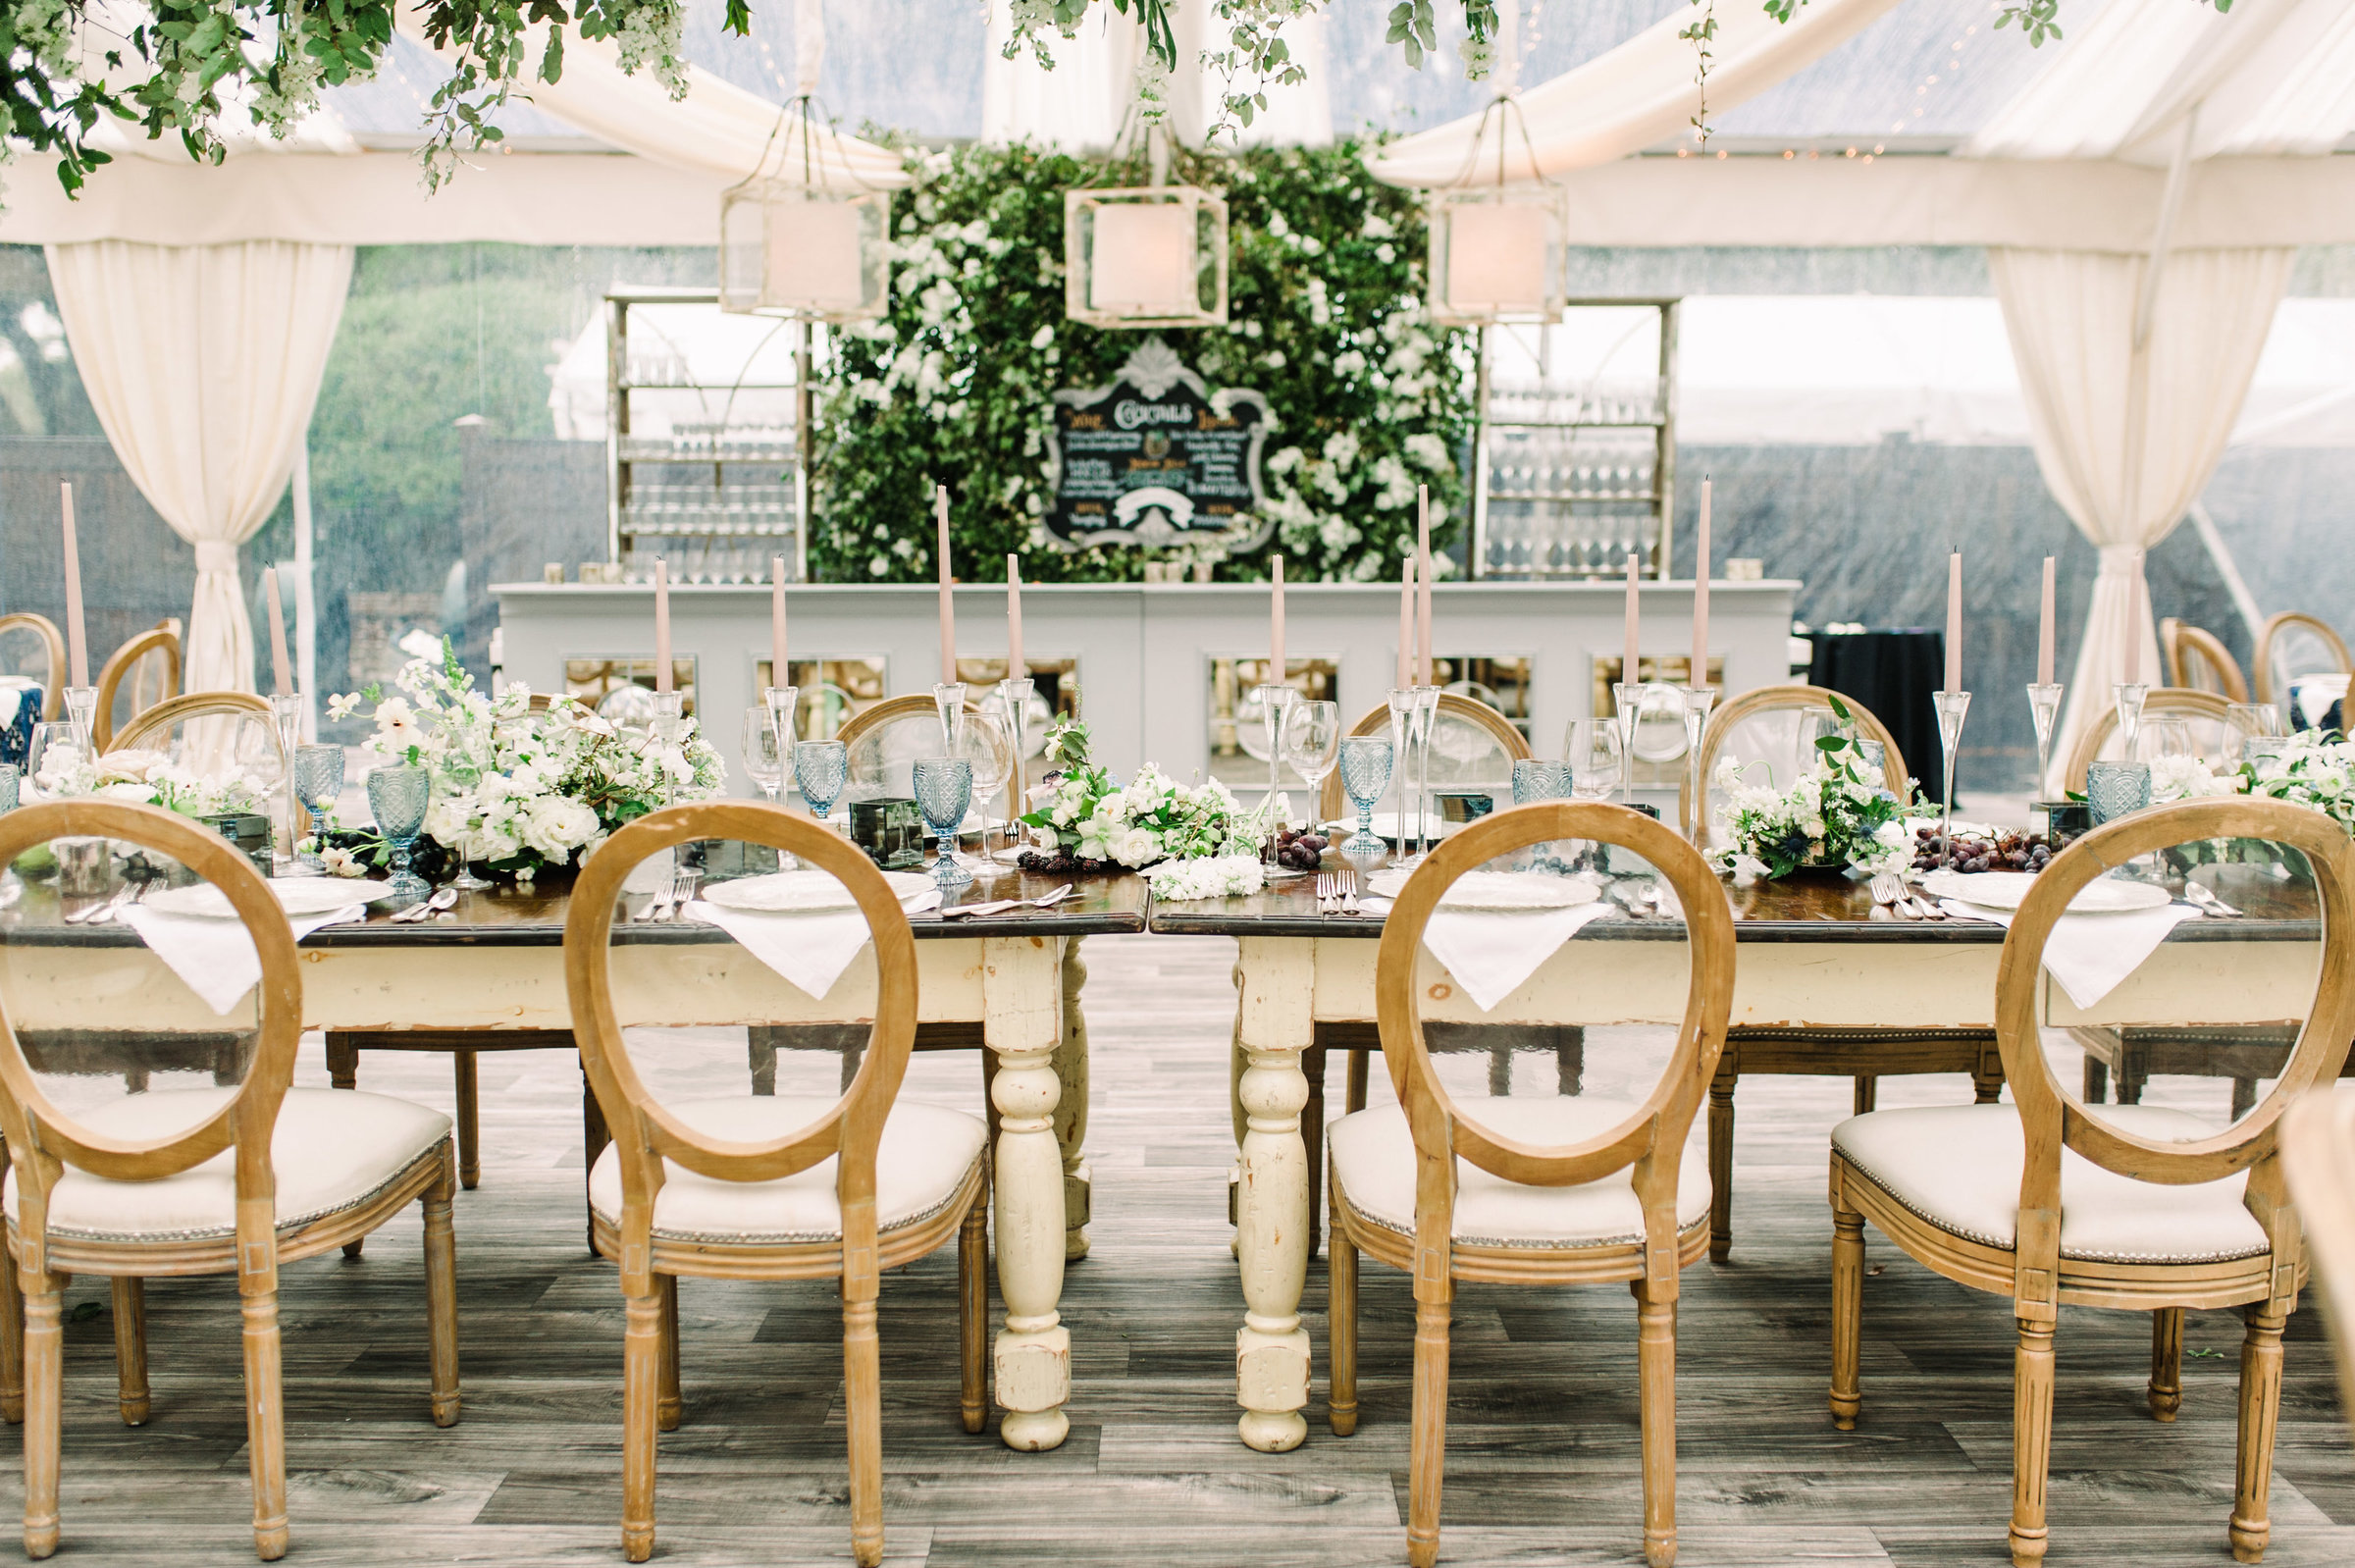 Emily Burton is an internationally known planner, event designer and producer and prop stylist with over 15 years experience. Wedding Planner based in Georgia, United States